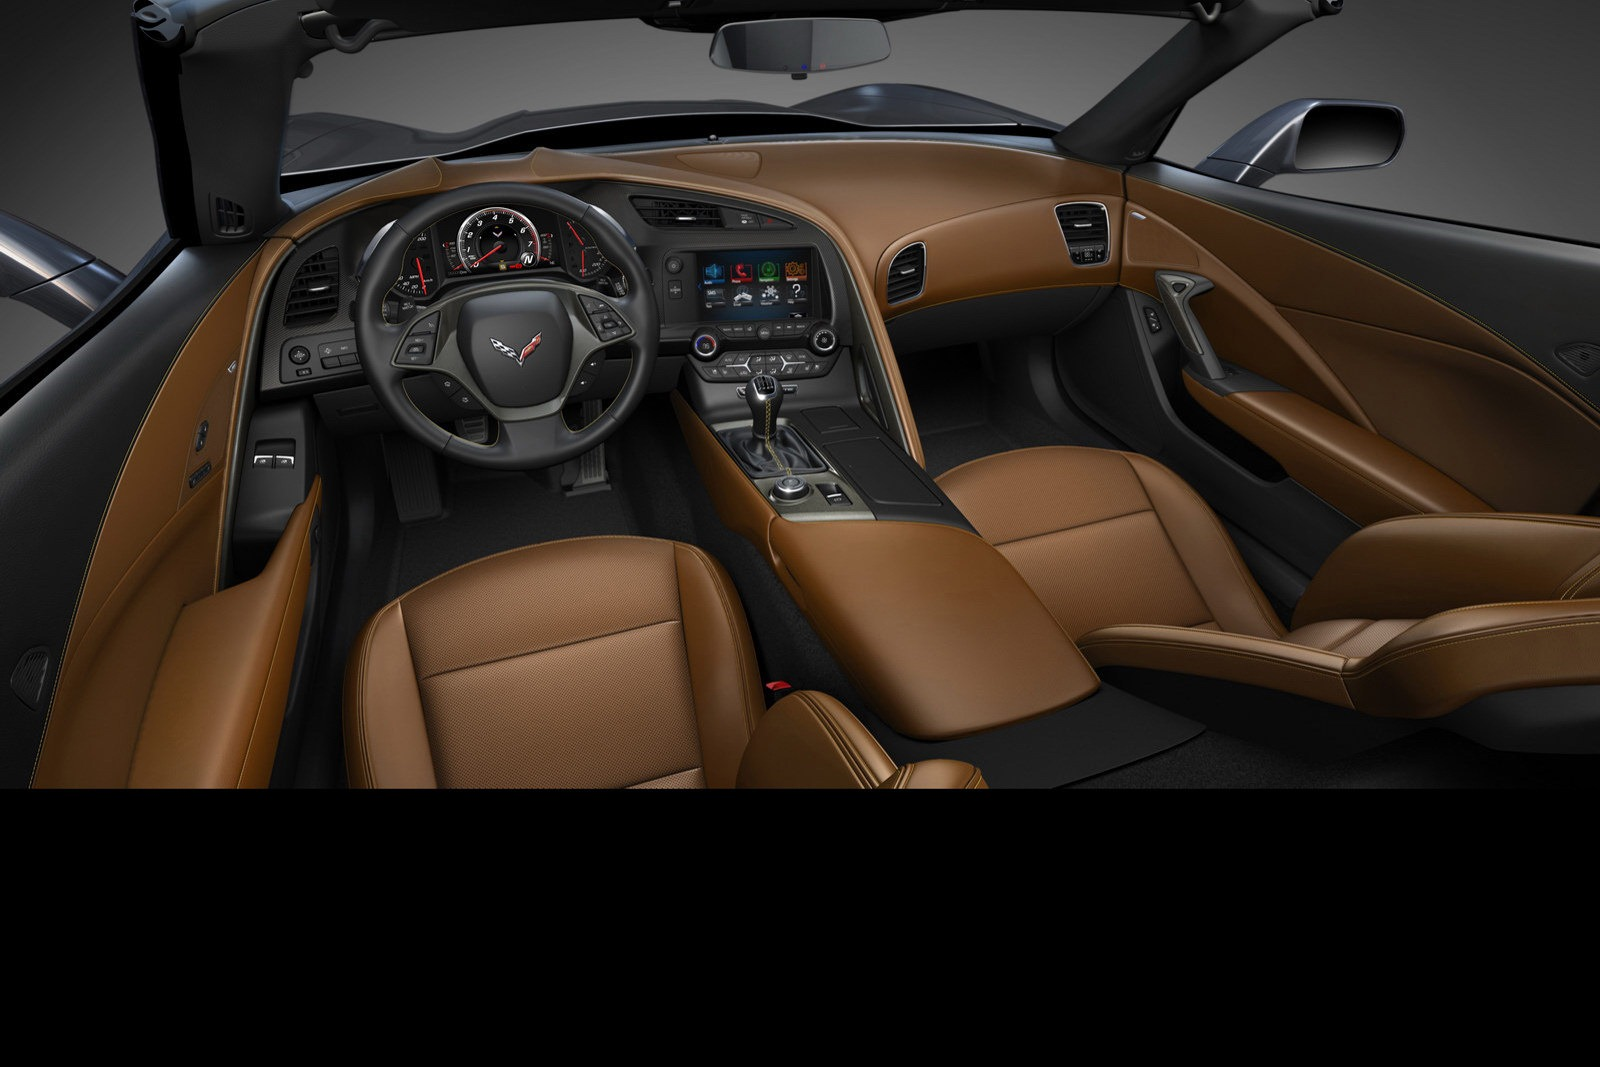 2014 Chevrolet Corvette C7 Interior 1 Forcegt Com